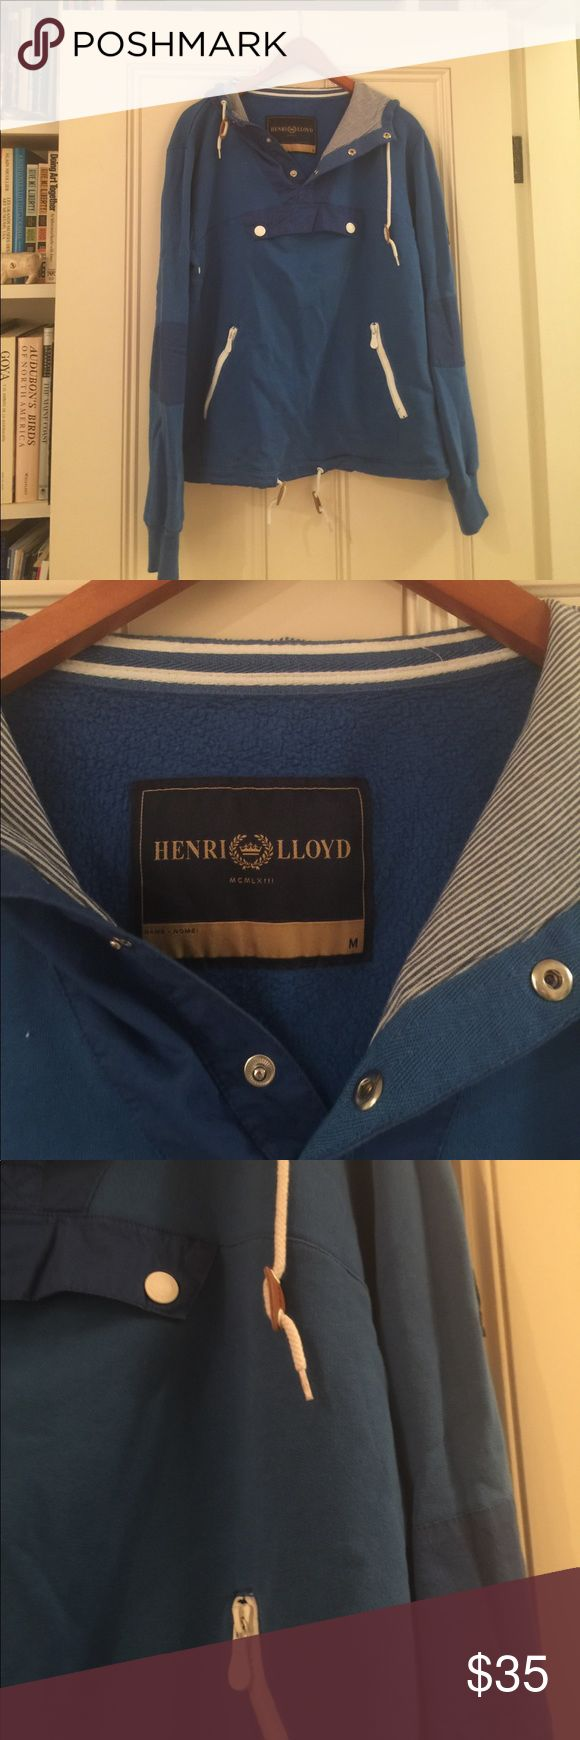 Henri Lloyd Blue Nautical Sweatshirt Size medium women's Henri Lloyd blue sweatshirt. Has two front zip pockets and a button front chest pocket. Blue and white striped hood, rope cinch around waist and hood, shoulder patch and elbow patches Henri Lloyd Tops Sweatshirts & Hoodies